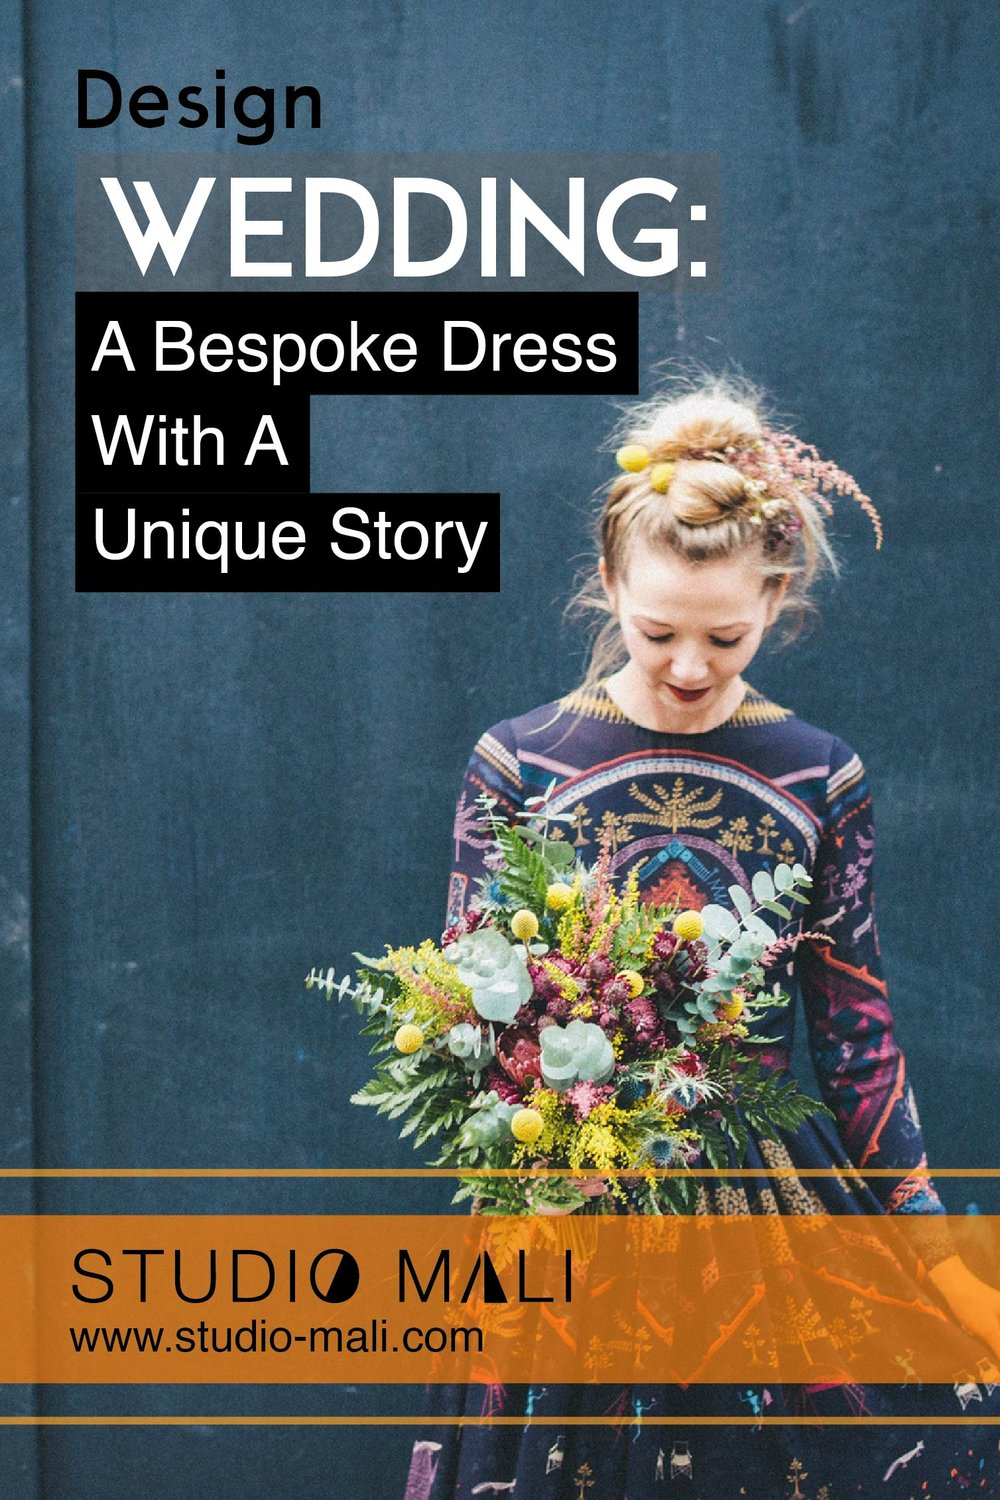 Design: A Bespoke Wedding Dress With A Unique Story